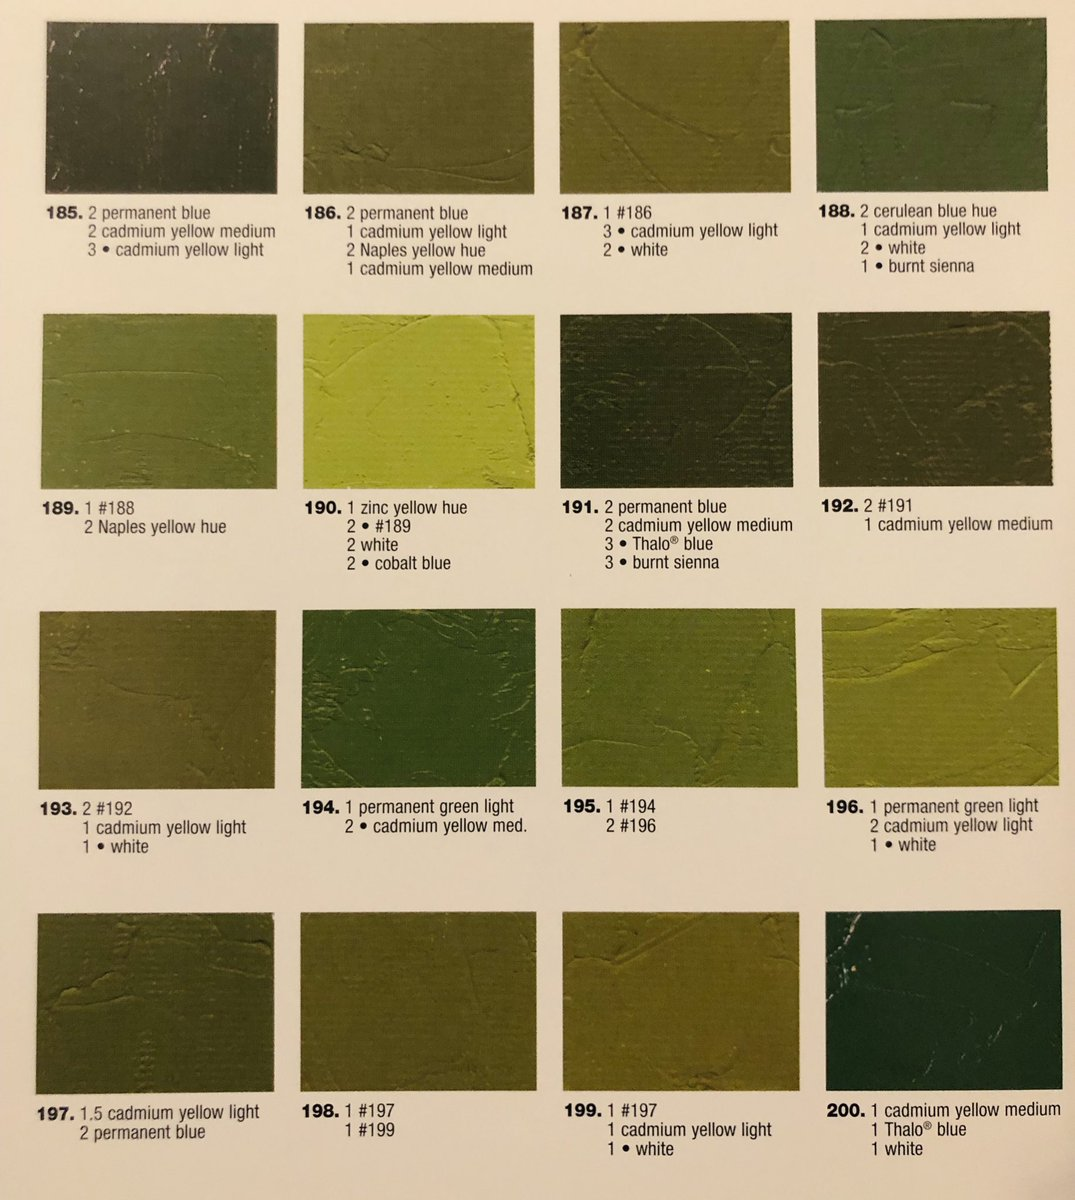 Here's a color mixing guide for different shades of green you can use when painting landscapes